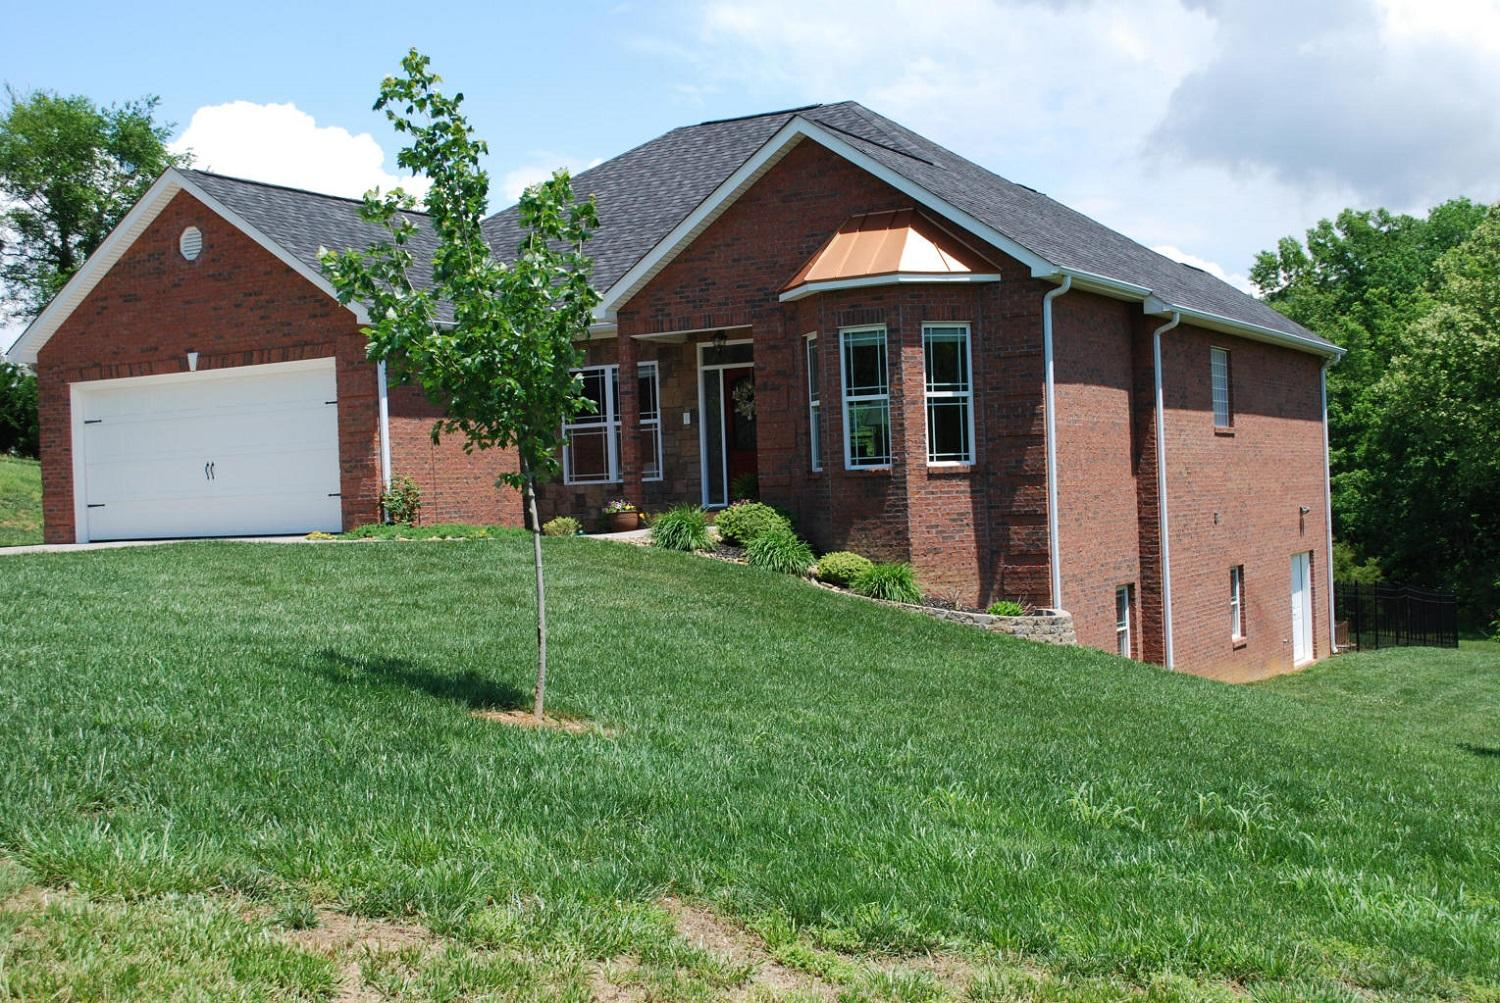 20190314202649535247000000-o Clinton anderson county homes for sale